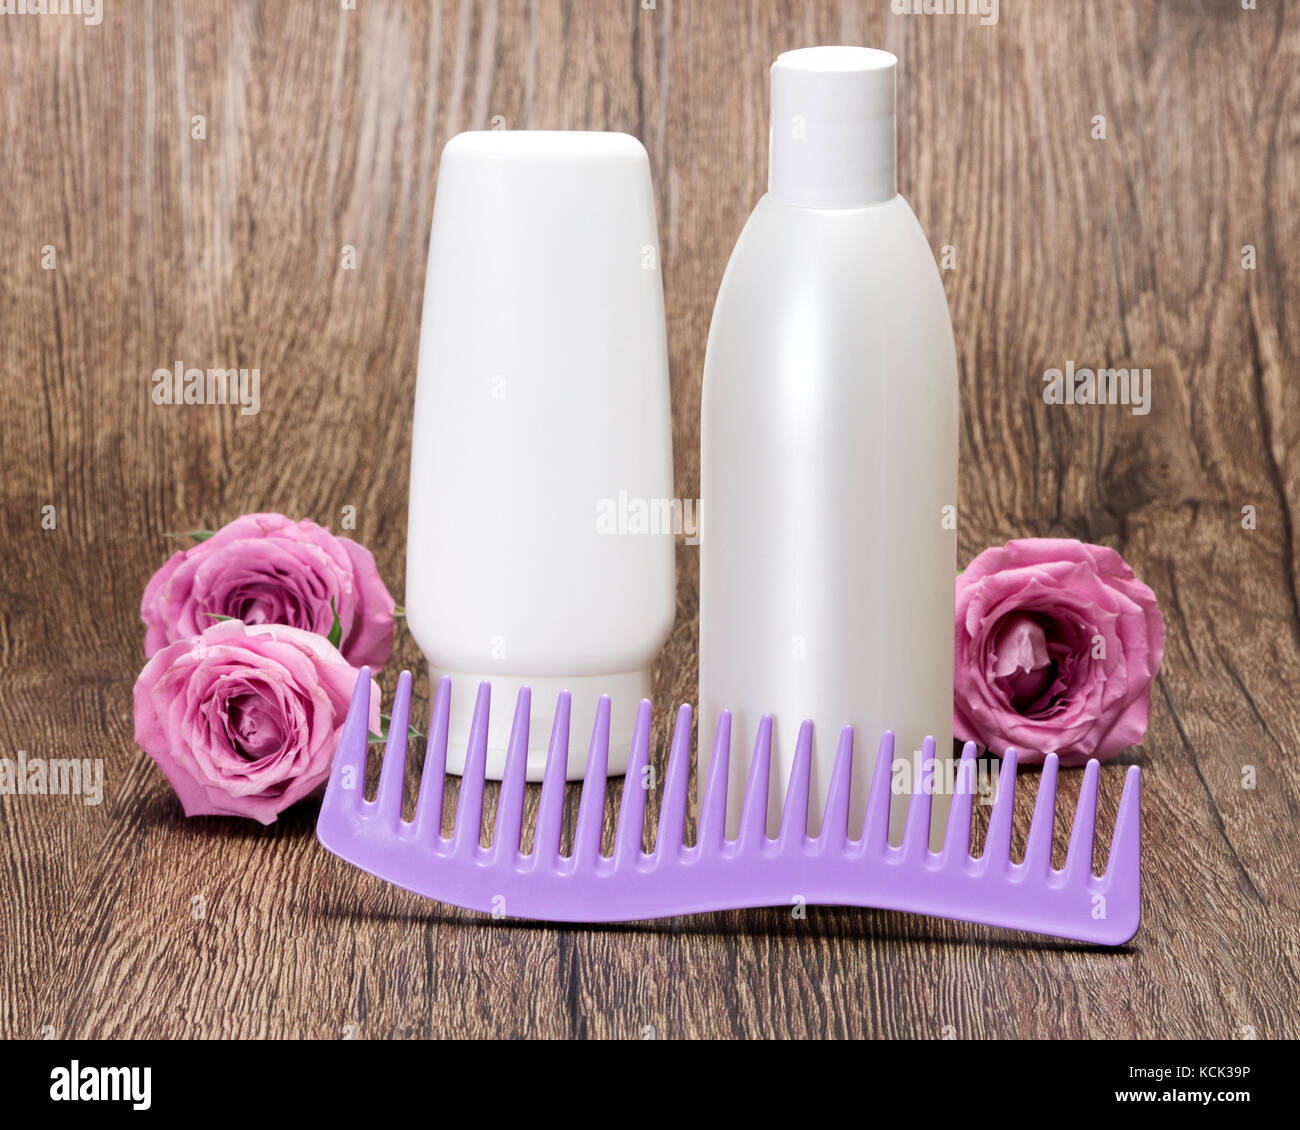 Hair care and styling cosmetics. Hair beauty products and comb with roses on wooden surface Stock Photo